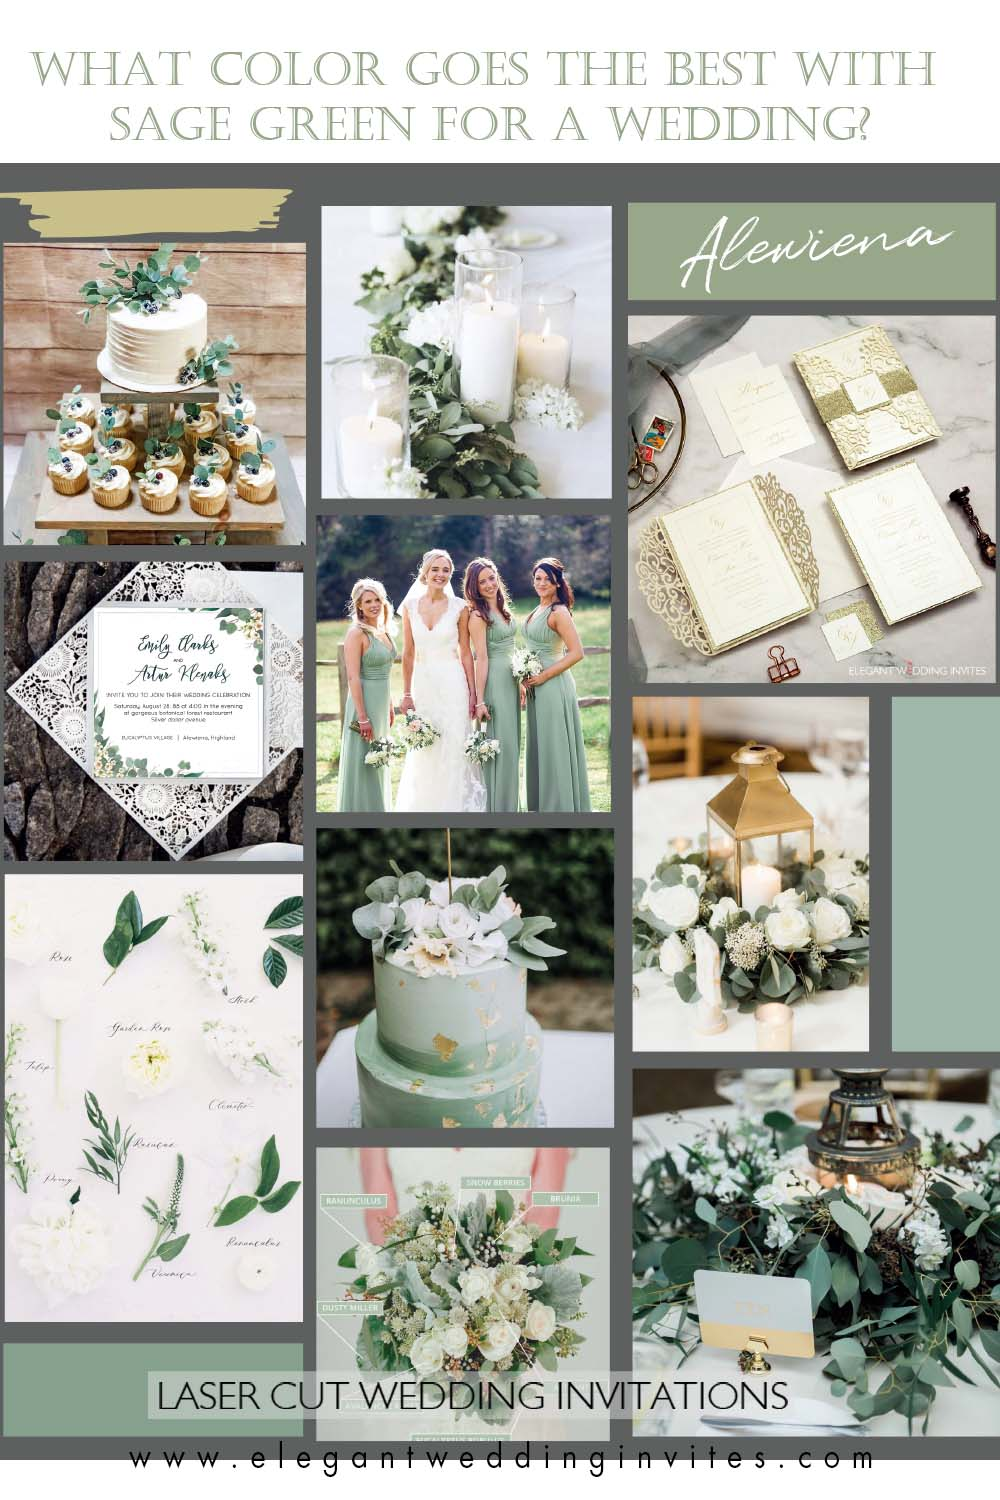 sage green is perfect choice for stylish modern celebration.